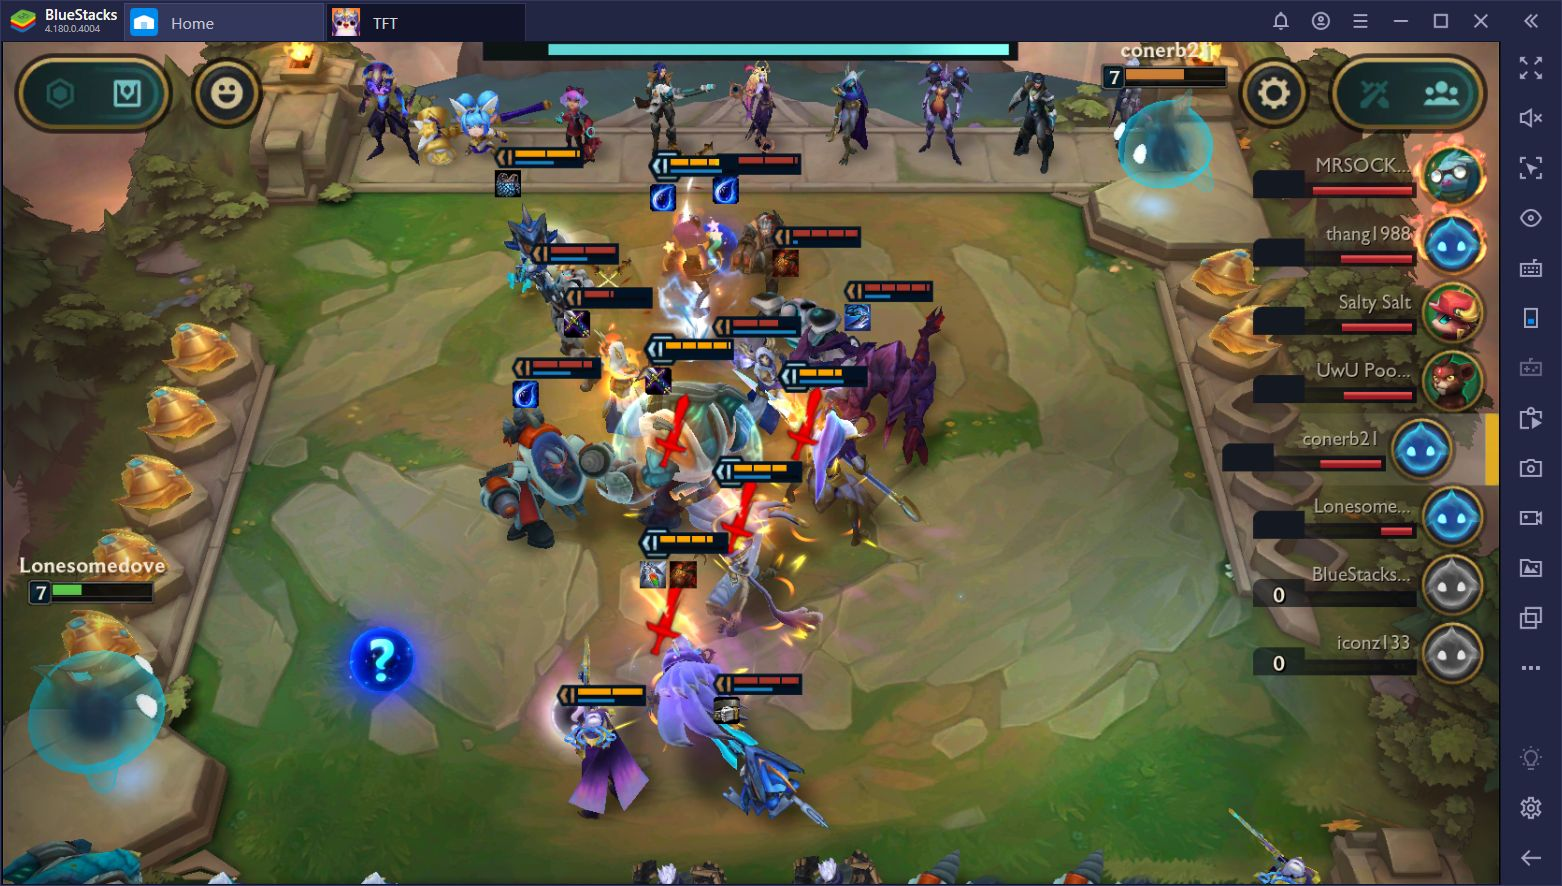 Teamfight Tactics on BlueStacks – The Best Tips and Tricks For Winning Every Match